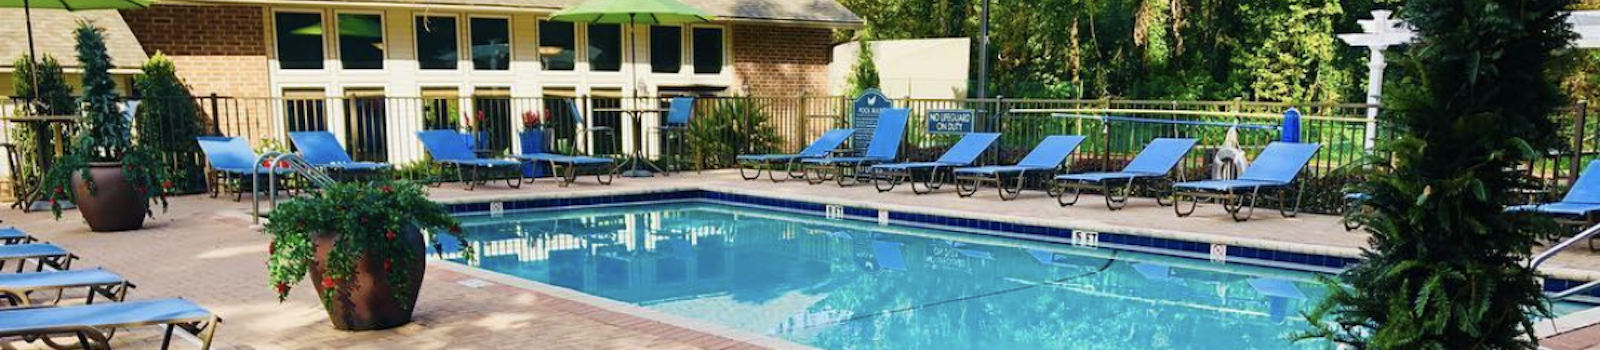 sparkling pool and lounge chairs at Aspen Run